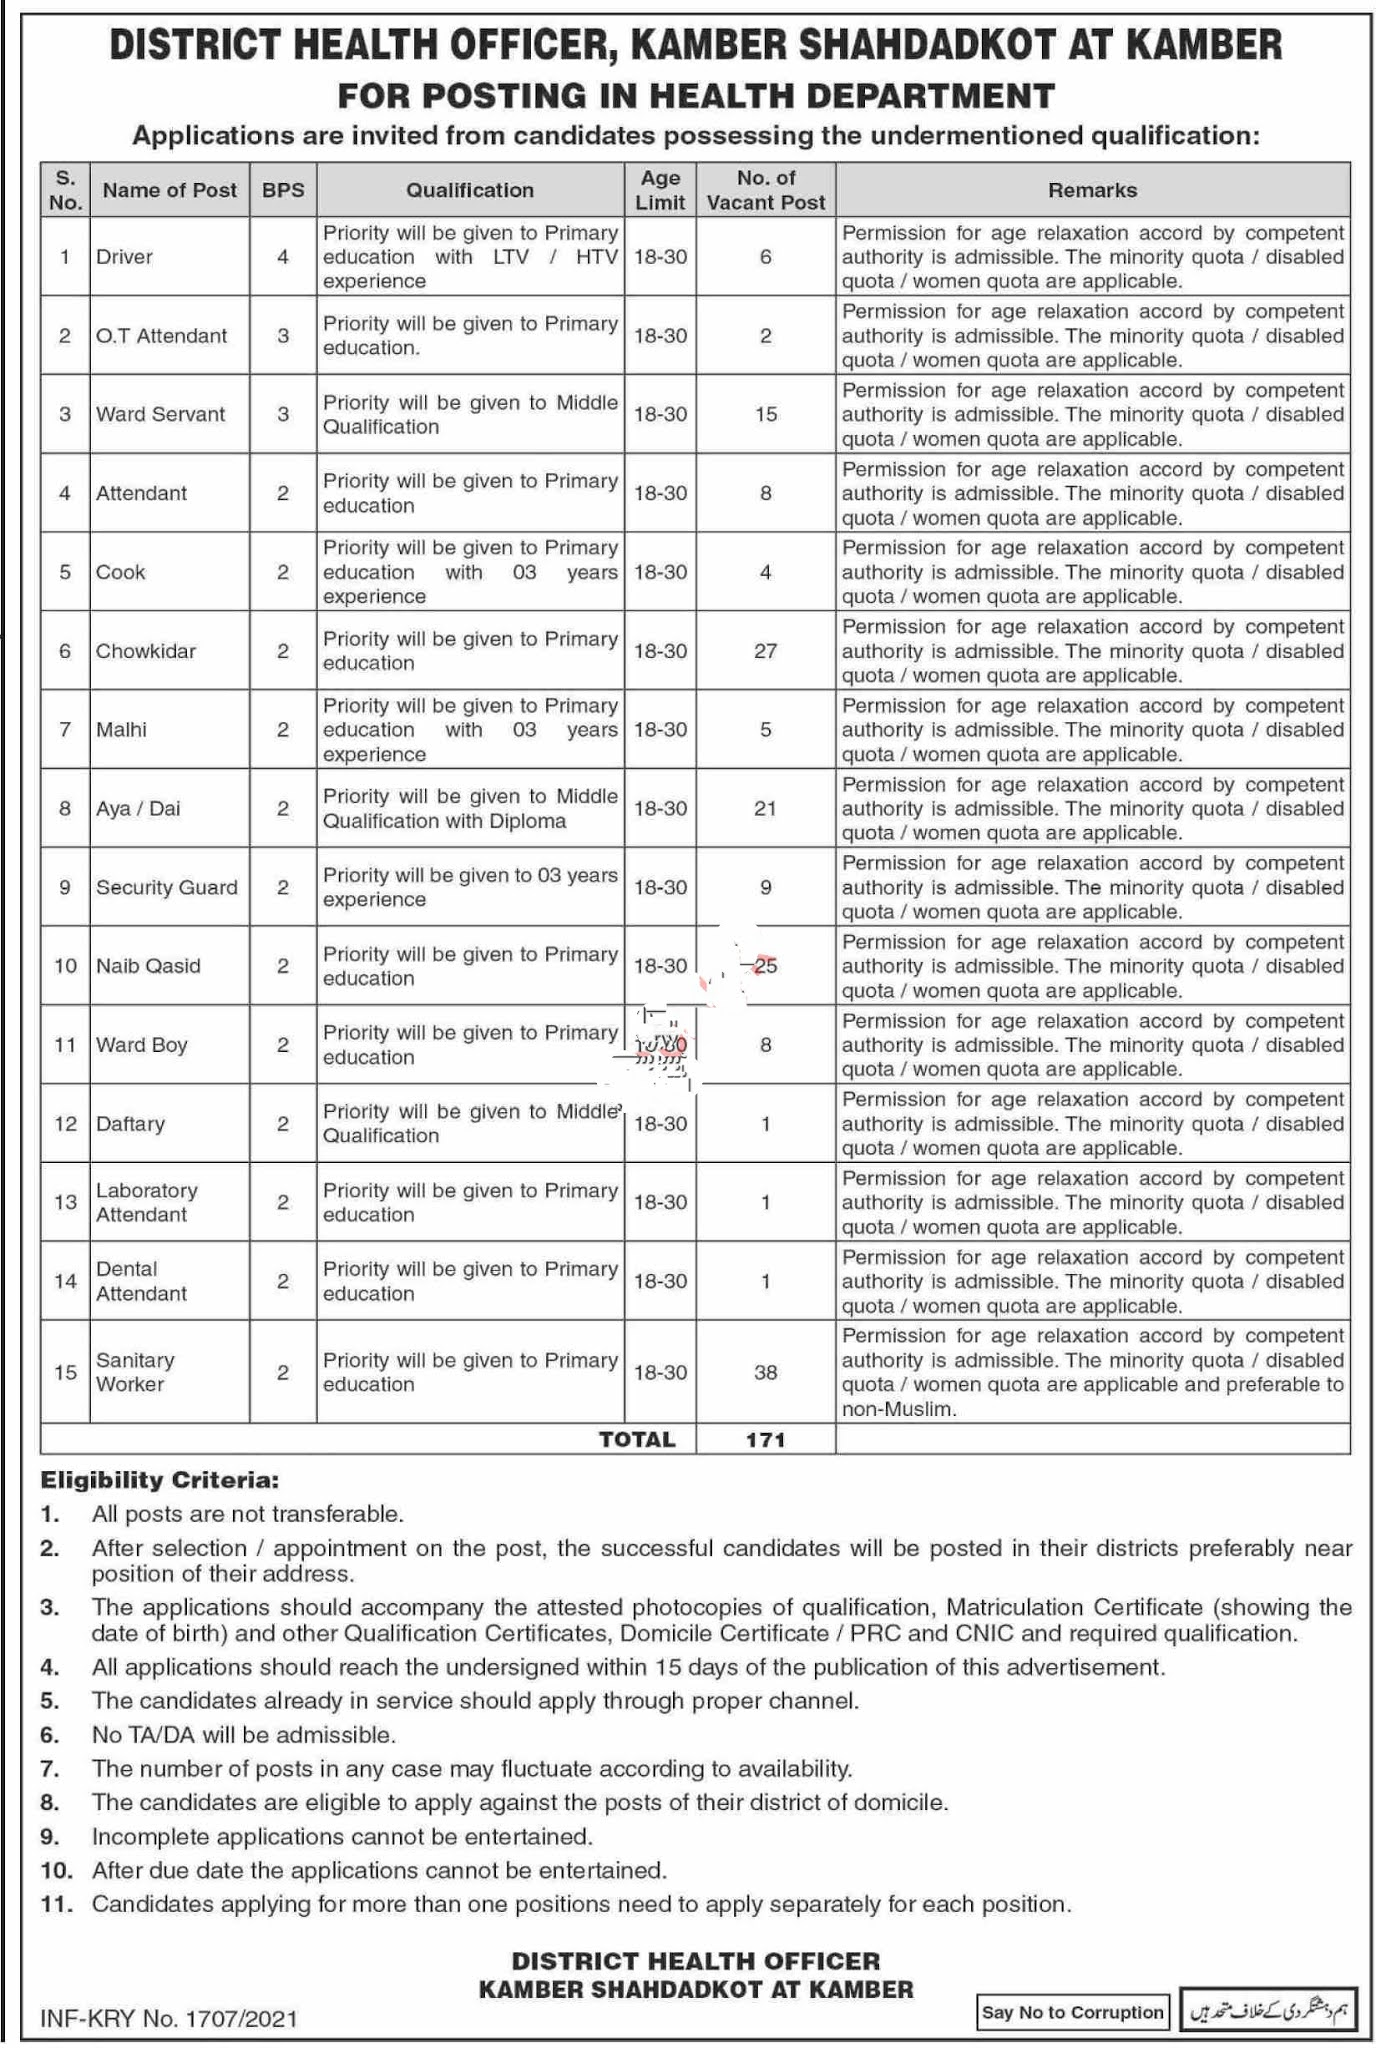 171 Posts in Health Department Government of the Sindh Jobs 2021 For OT Attendant, Ward Servant, Attendant, Cook, Chowkidar, Malhi, Aya